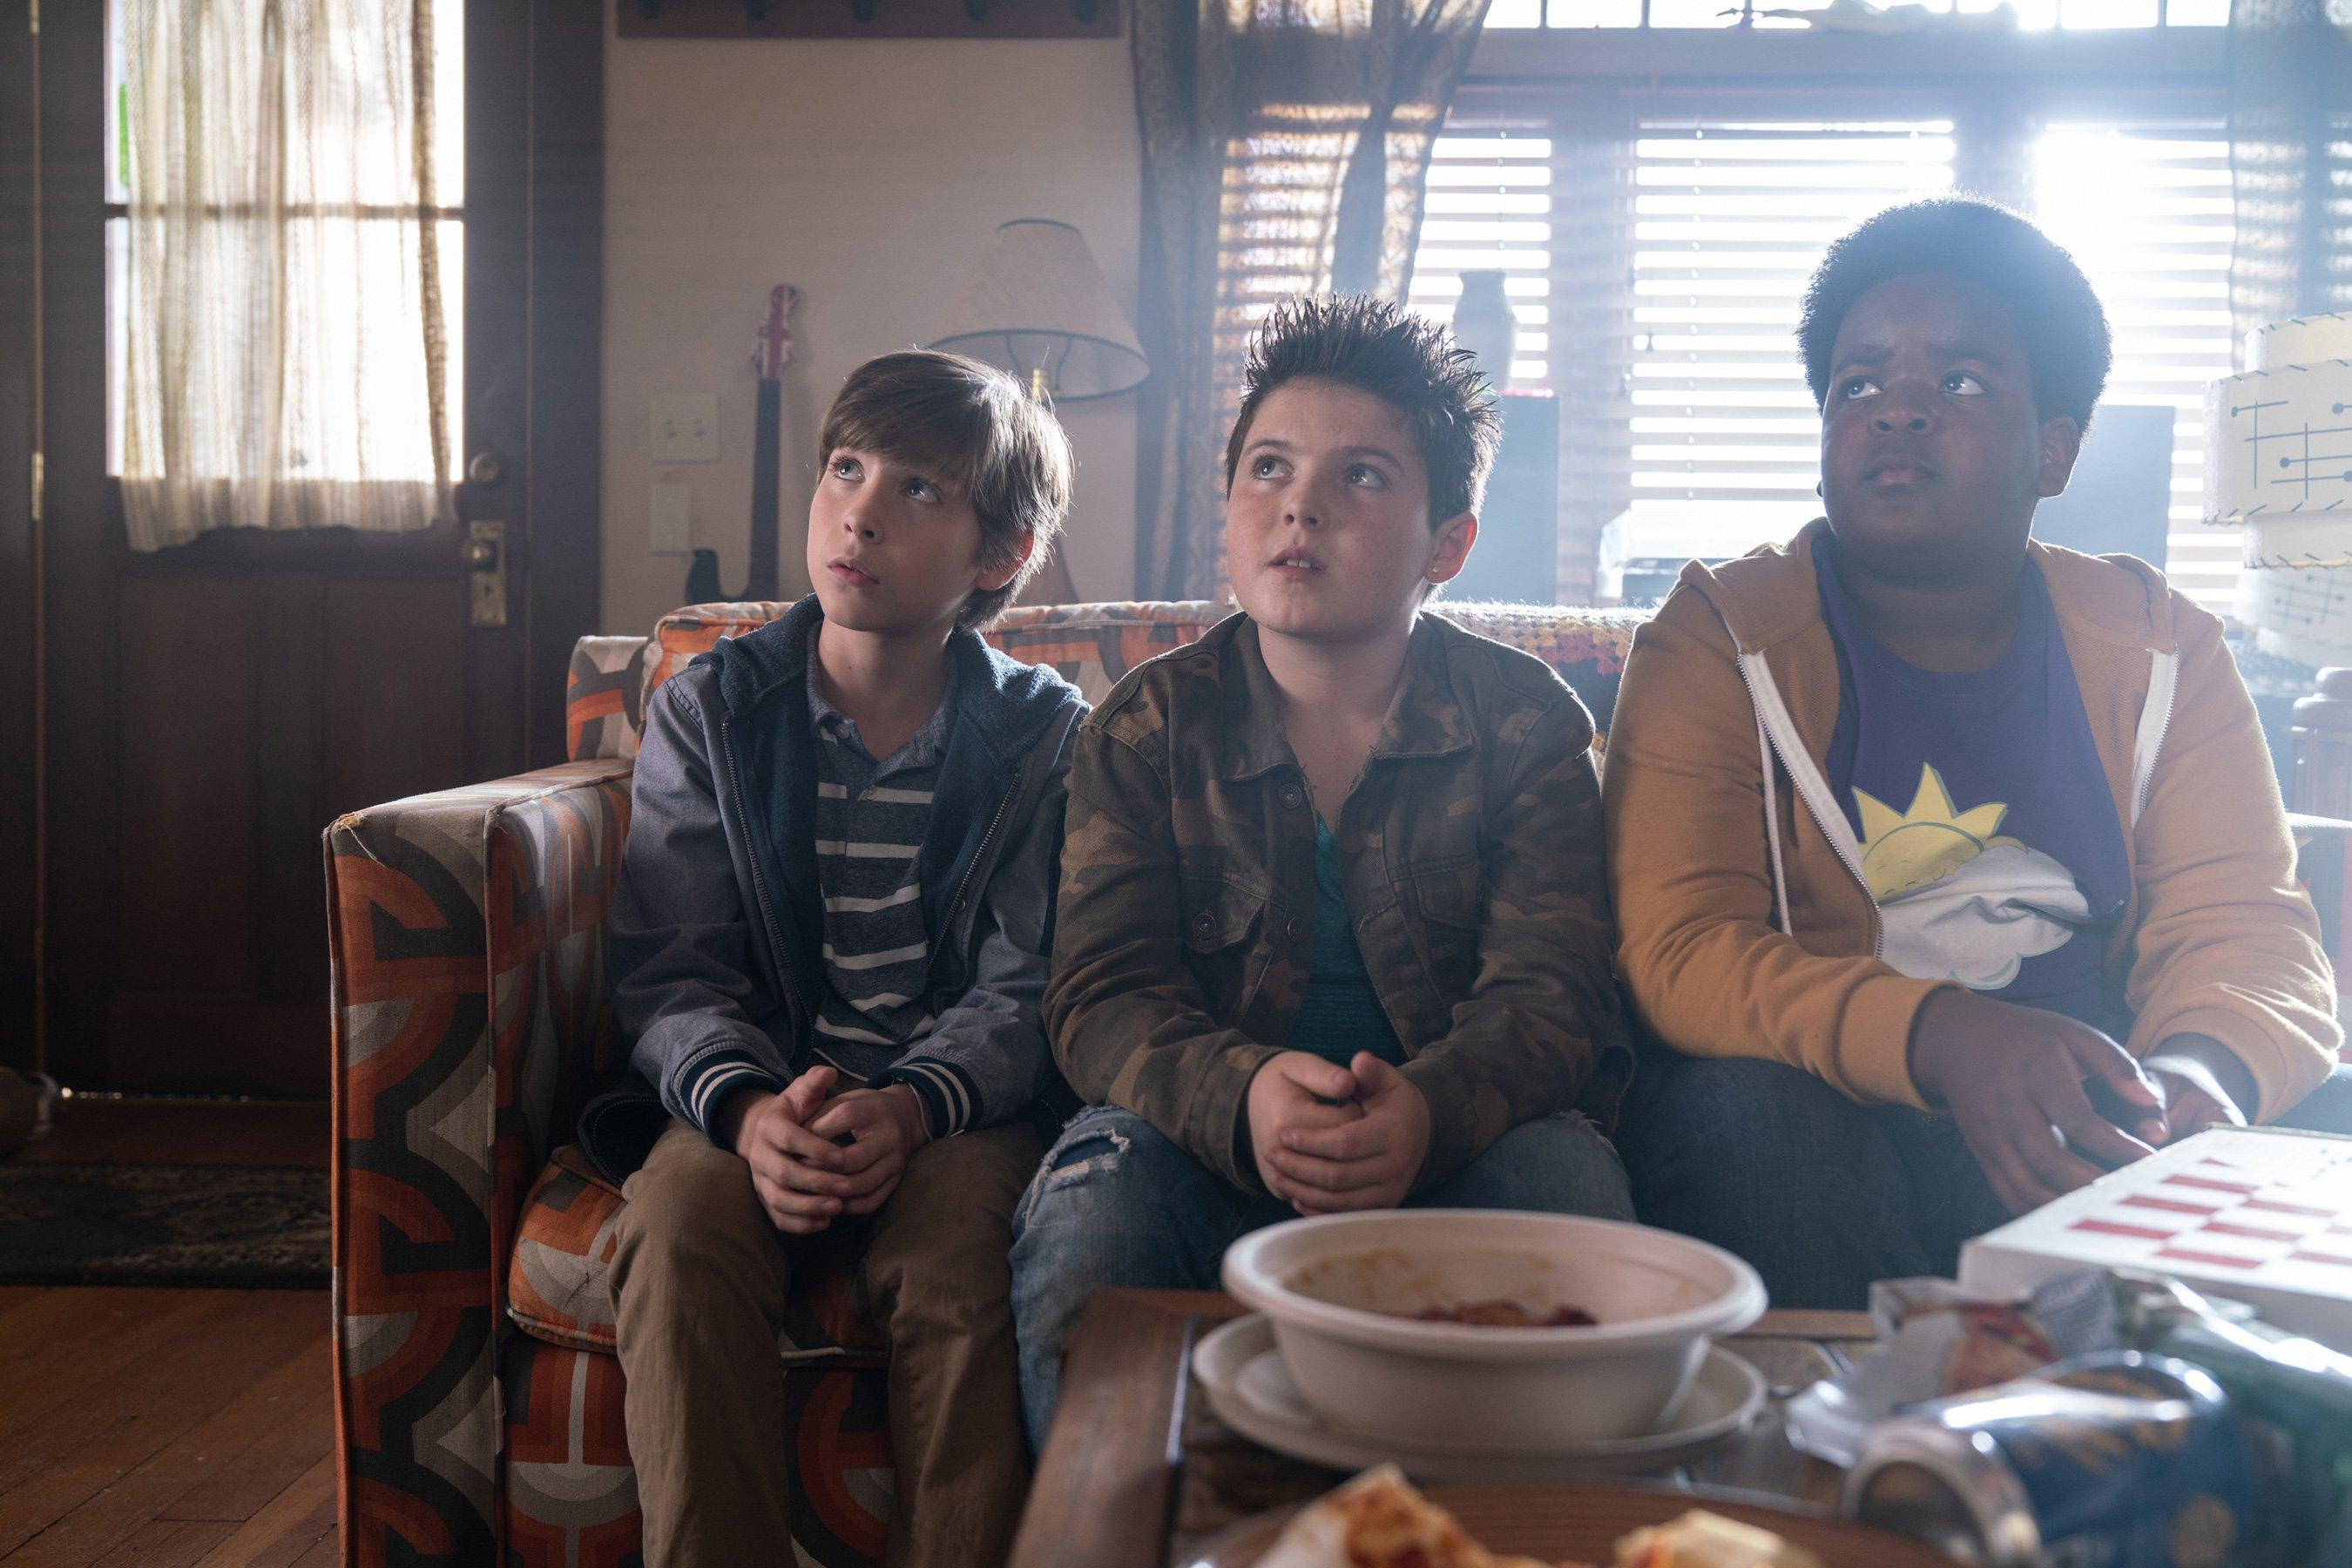 The 'Good Boys' cast's advice for young viewers who want to check out their F-bomb-heavy, R-rated movie